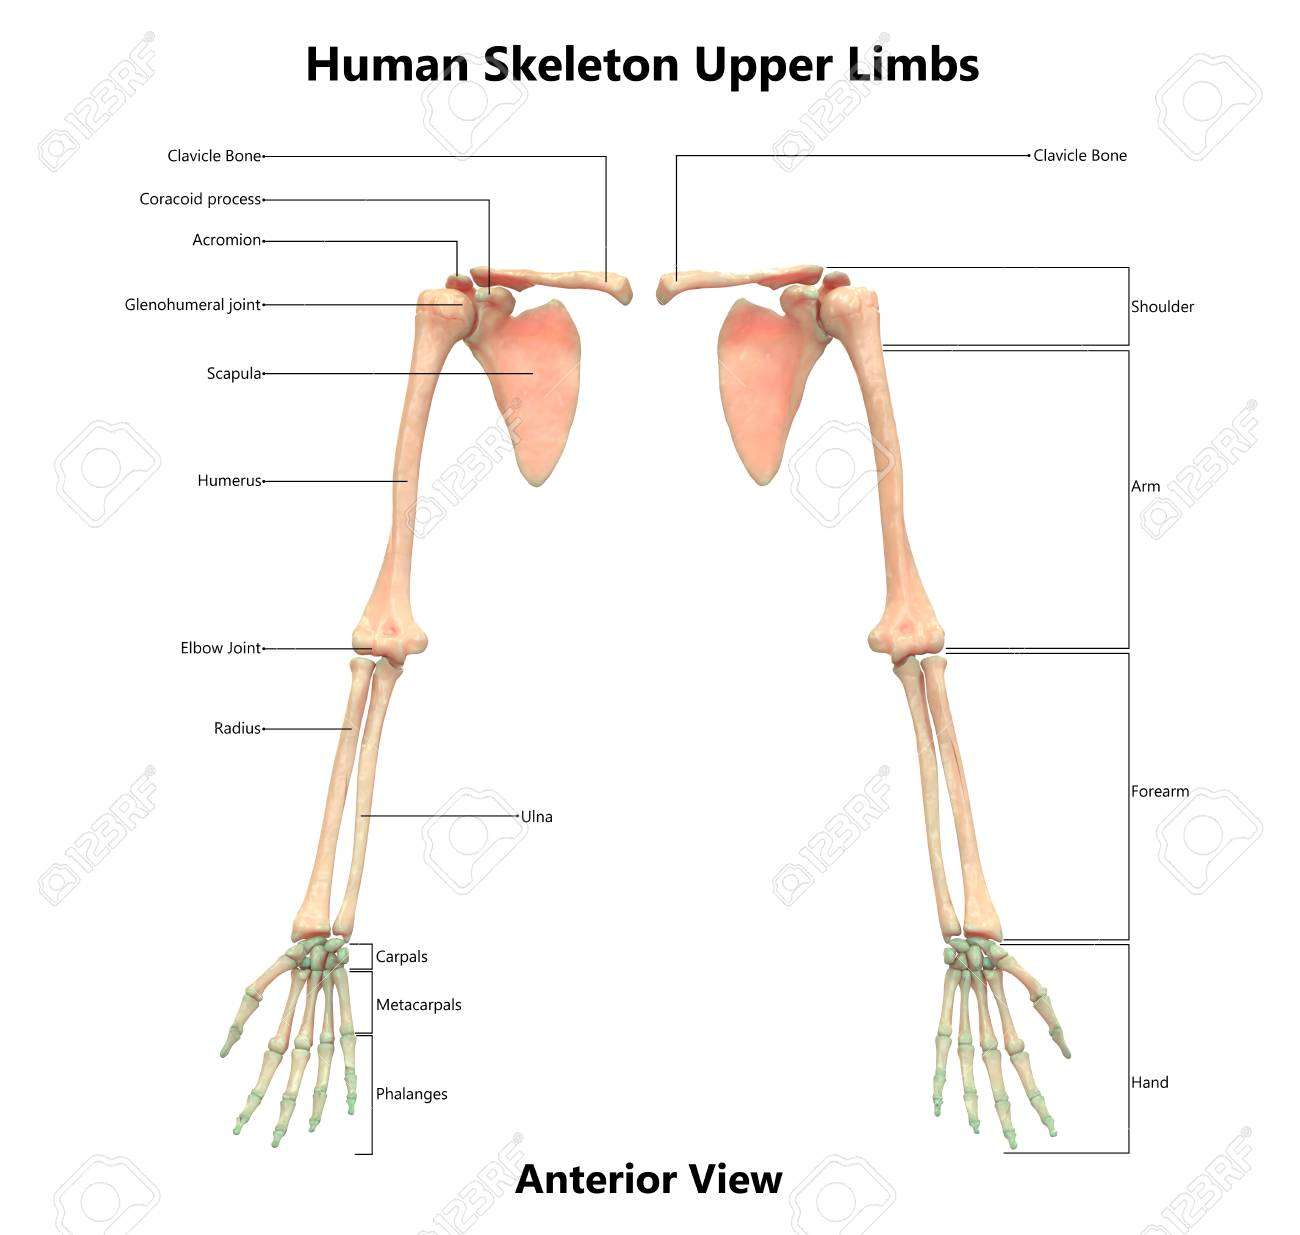 Human Skeleton System Upper Limbs Anatomy Anterior View Stock